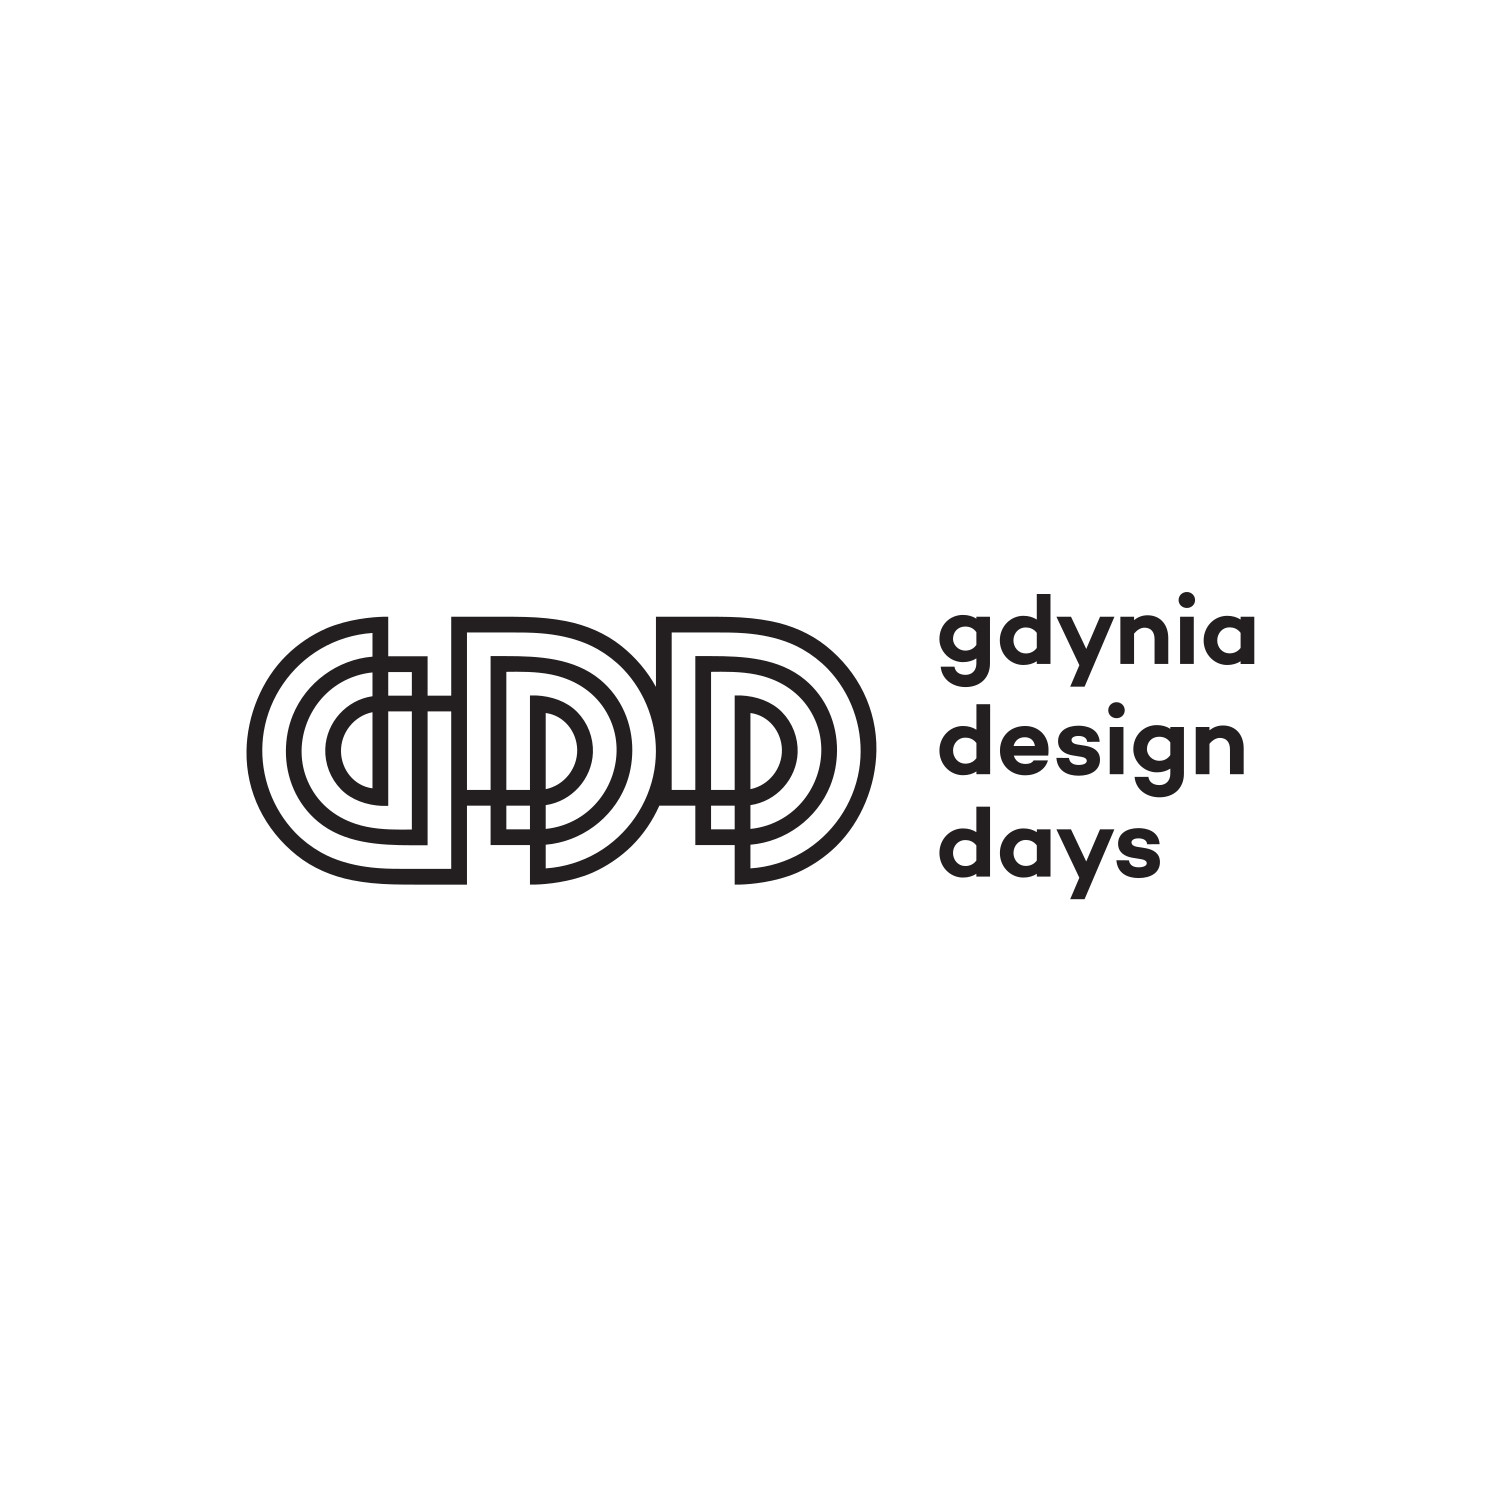 Logo of Gdynia Design Days